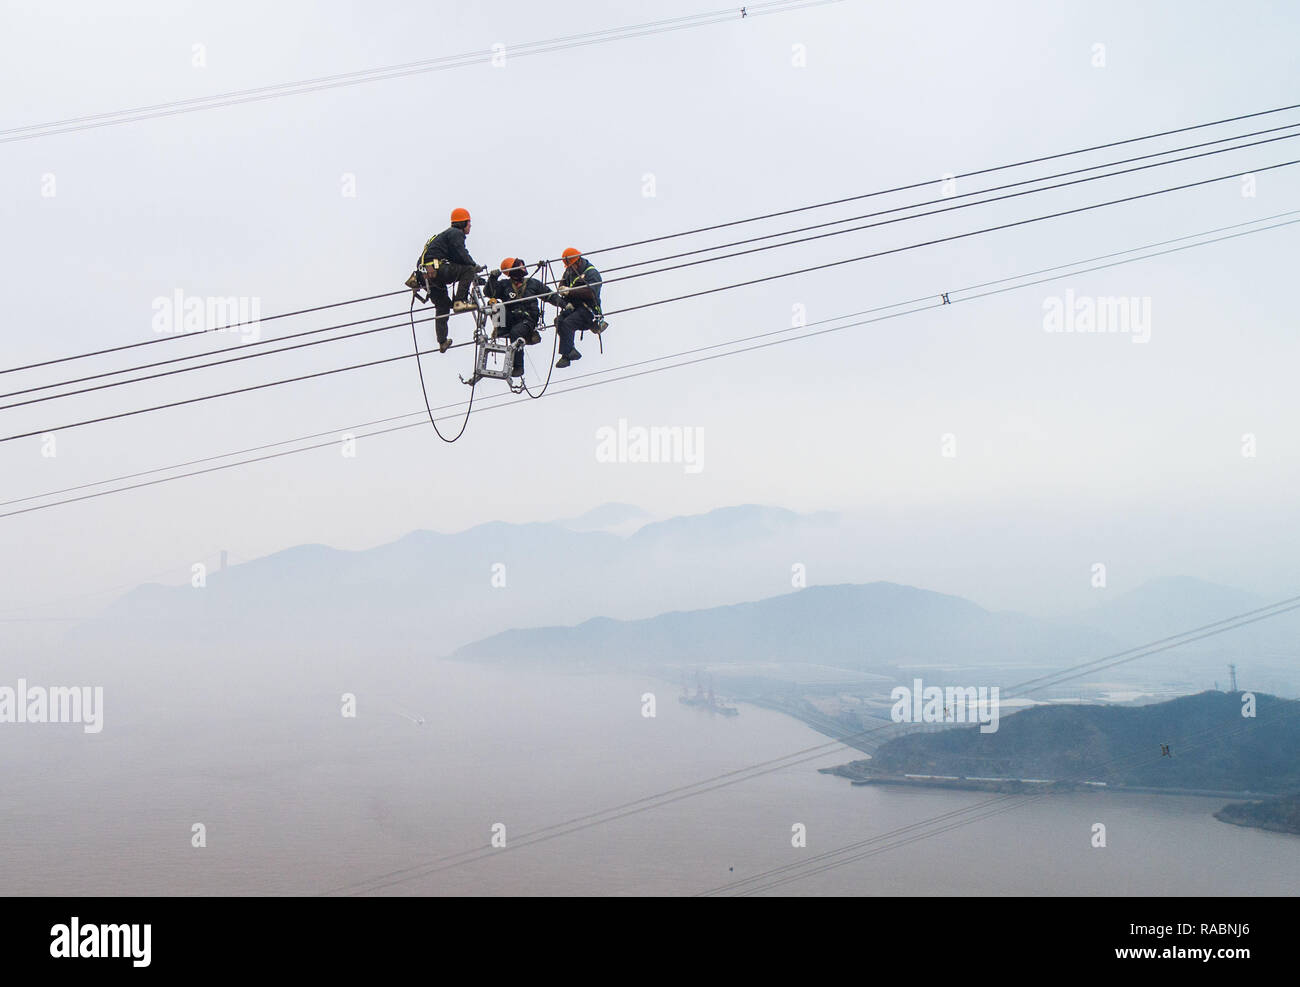 Zhoushan, China's Zhejiang Province. 3rd Jan, 2019. Staff members work on the cables at the site of the giant power supply pylons in Zhoushan, east China's Zhejiang Province, Jan. 3, 2019. The two 380-meter-tall pylons carry power cables between Zhoushan's Jintang and Cezi islands, a distance of 2,656 meters. The new pylon project is a part of a new ultra-high voltage power line project between cities of Zhoushan and Ningbo. Credit: Xu Yu/Xinhua/Alamy Live News - Stock Image